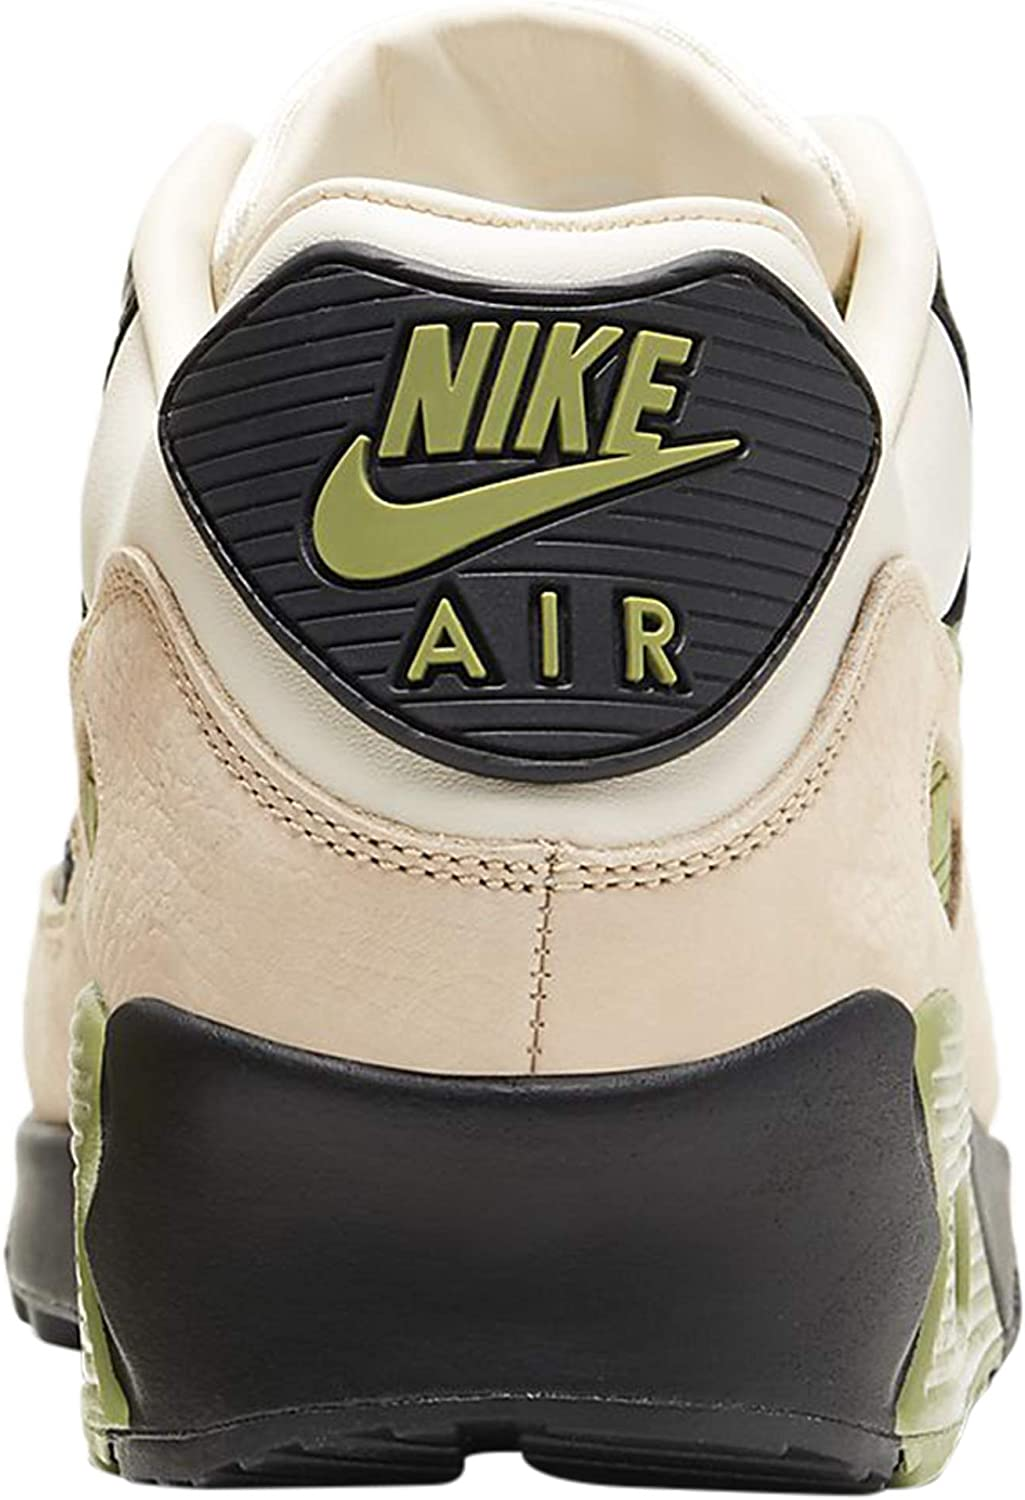 Nike Air Max 90, Chaussure de Course Homme : Amazon.fr: Chaussures ...